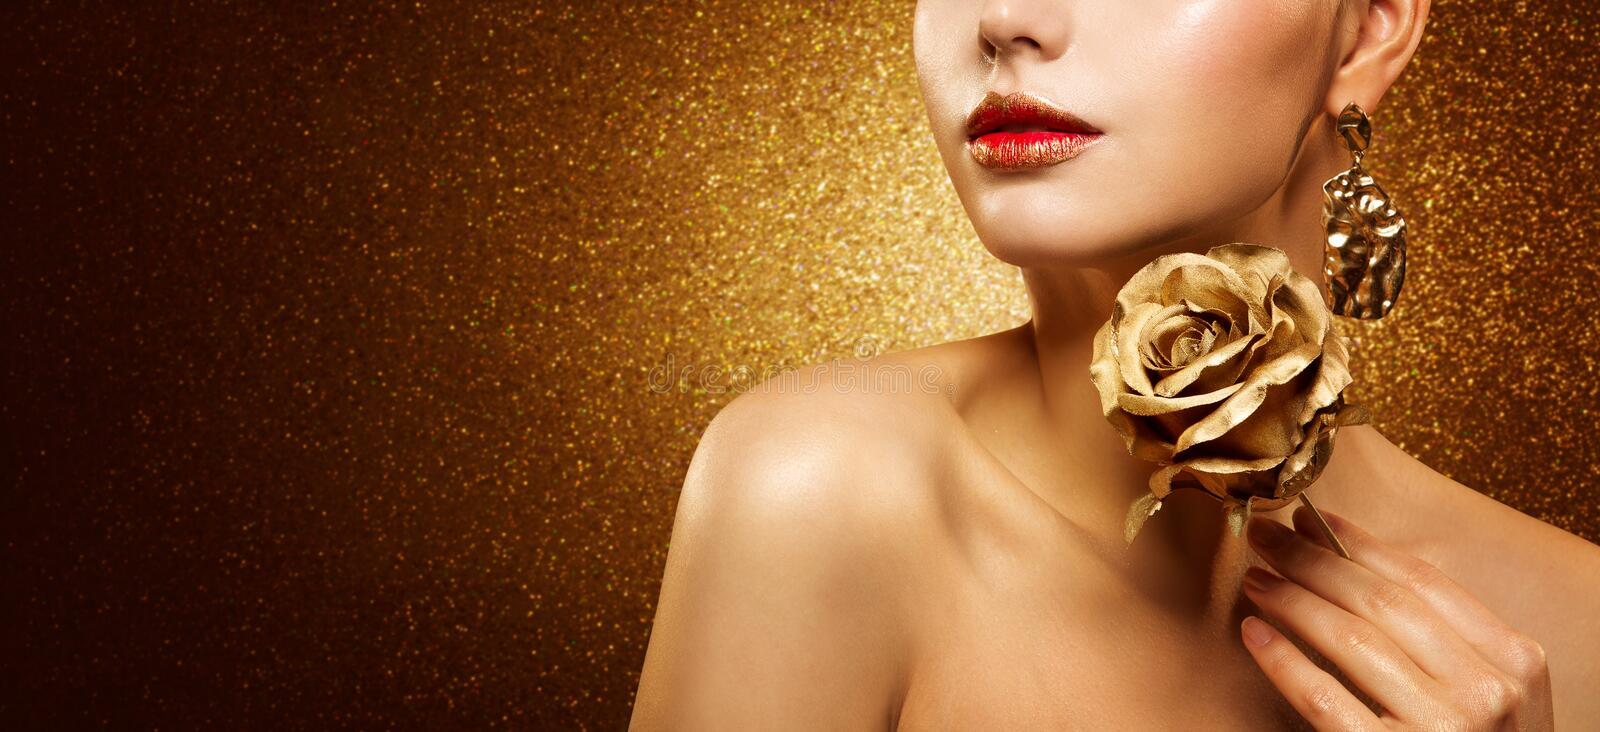 Fashion Model Beauty Make Up, Beautiful Woman hold Gold Flower Rose and Luxury Golden Makeup stock photo